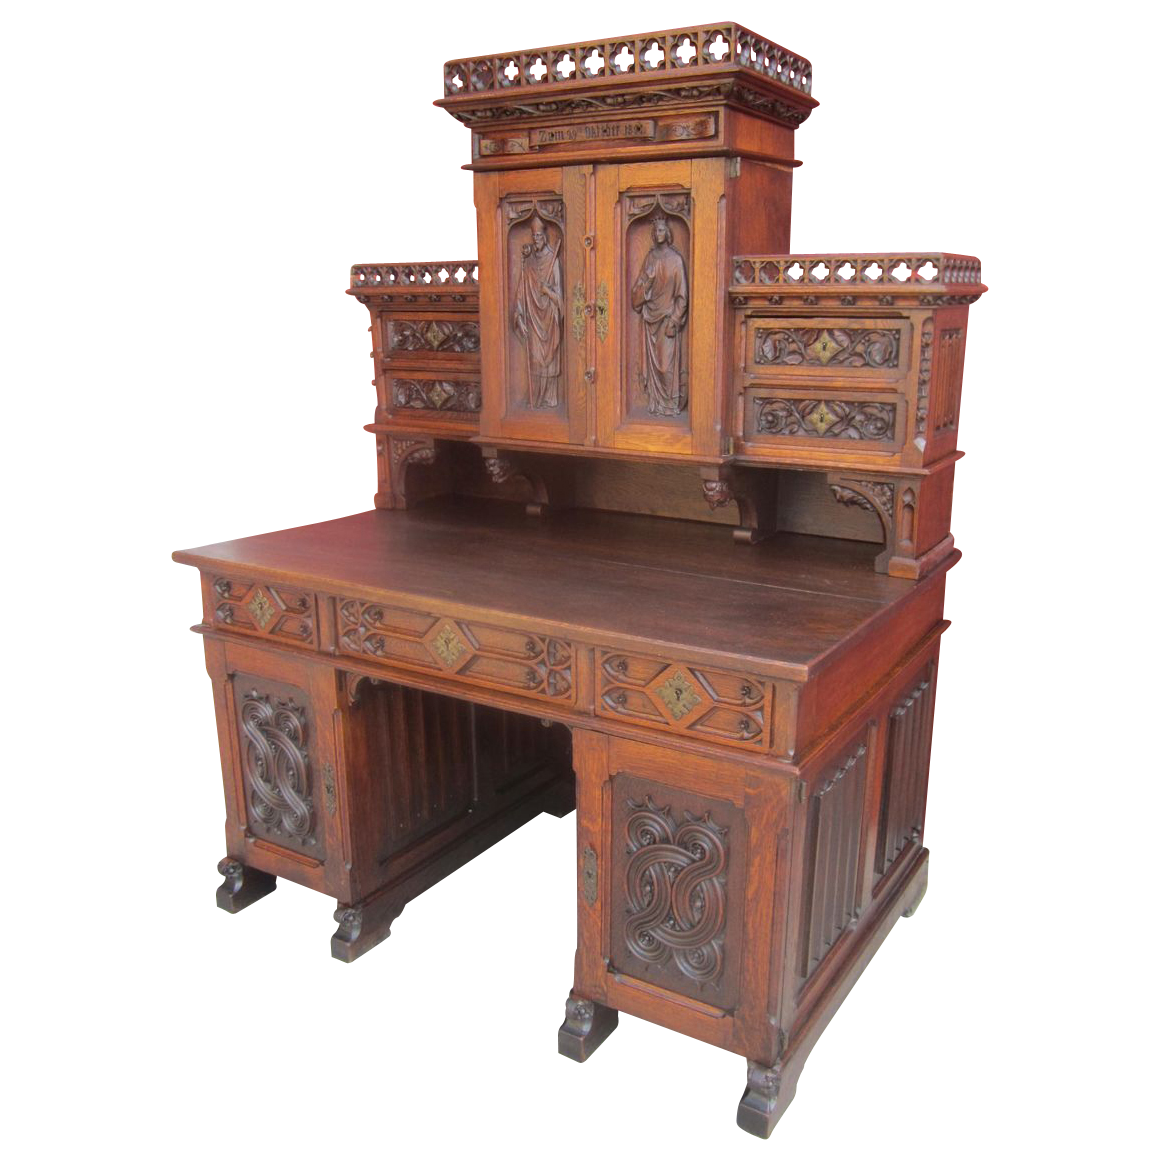 French antique gothic desk antique furniture sold on ruby lane for Antique furniture desk